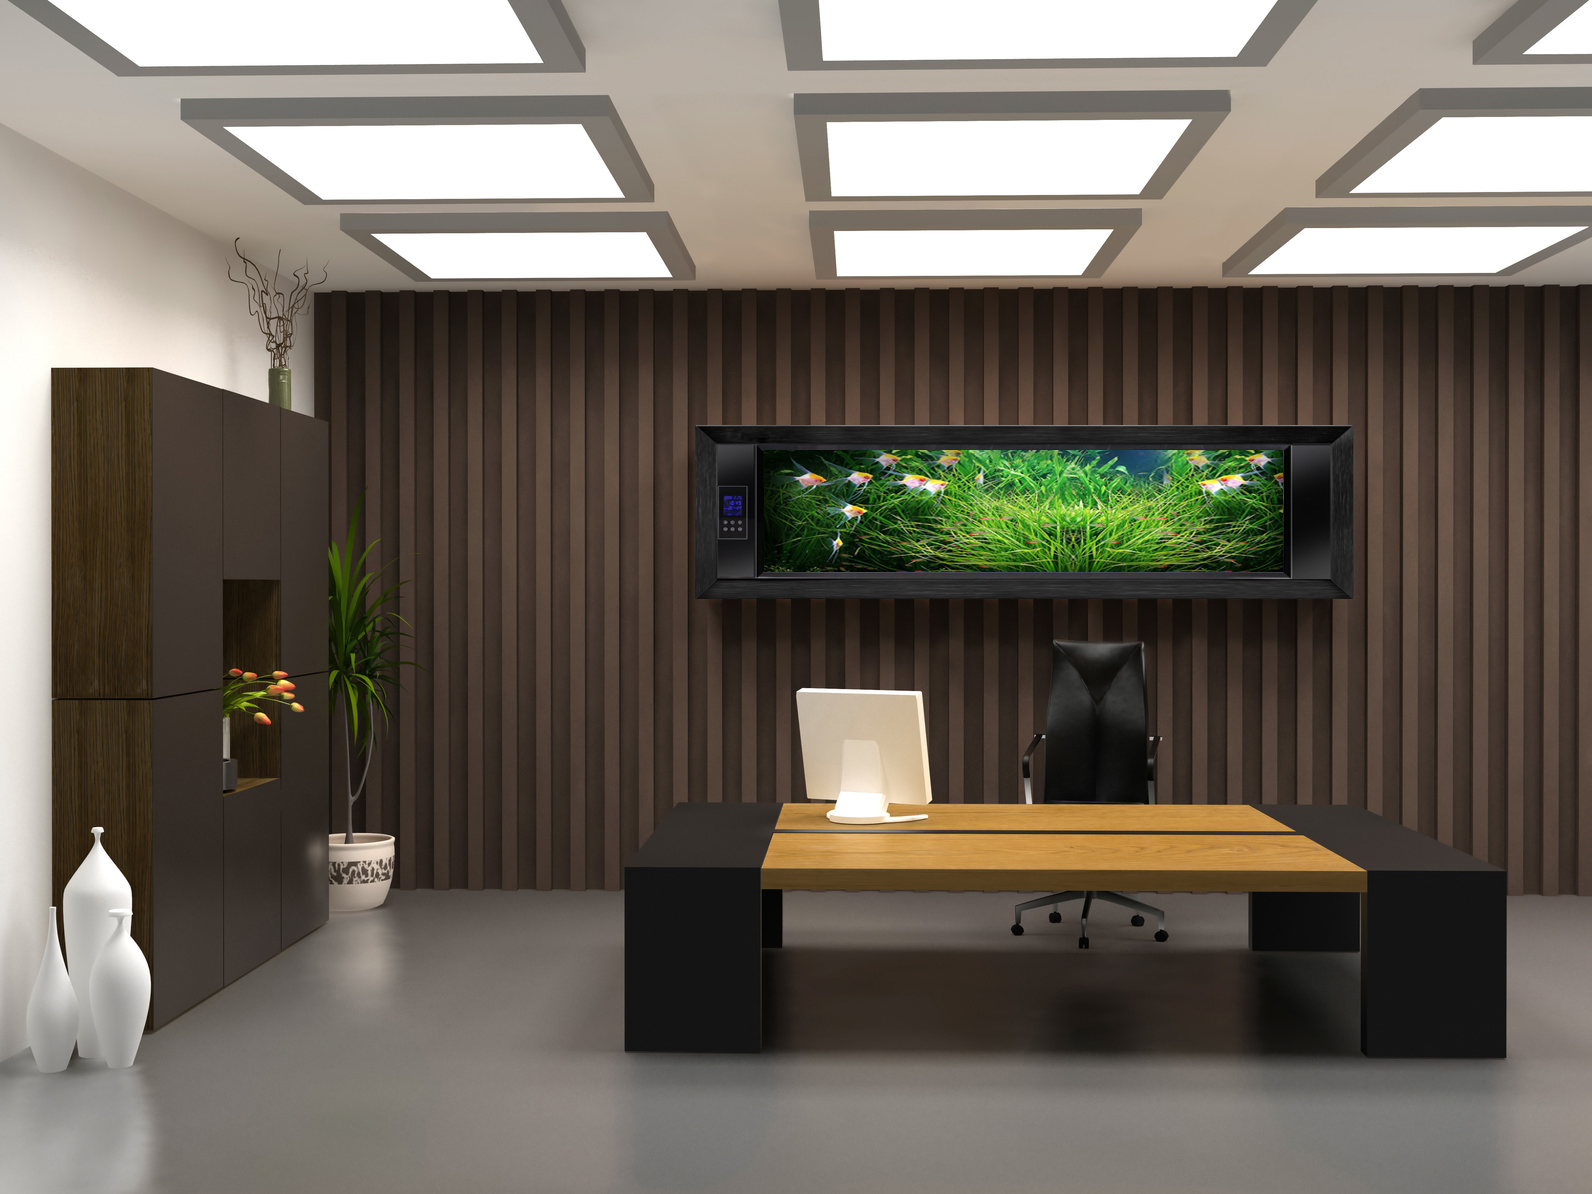 Elegant ceo office design bellisima for Modern office interior design pictures